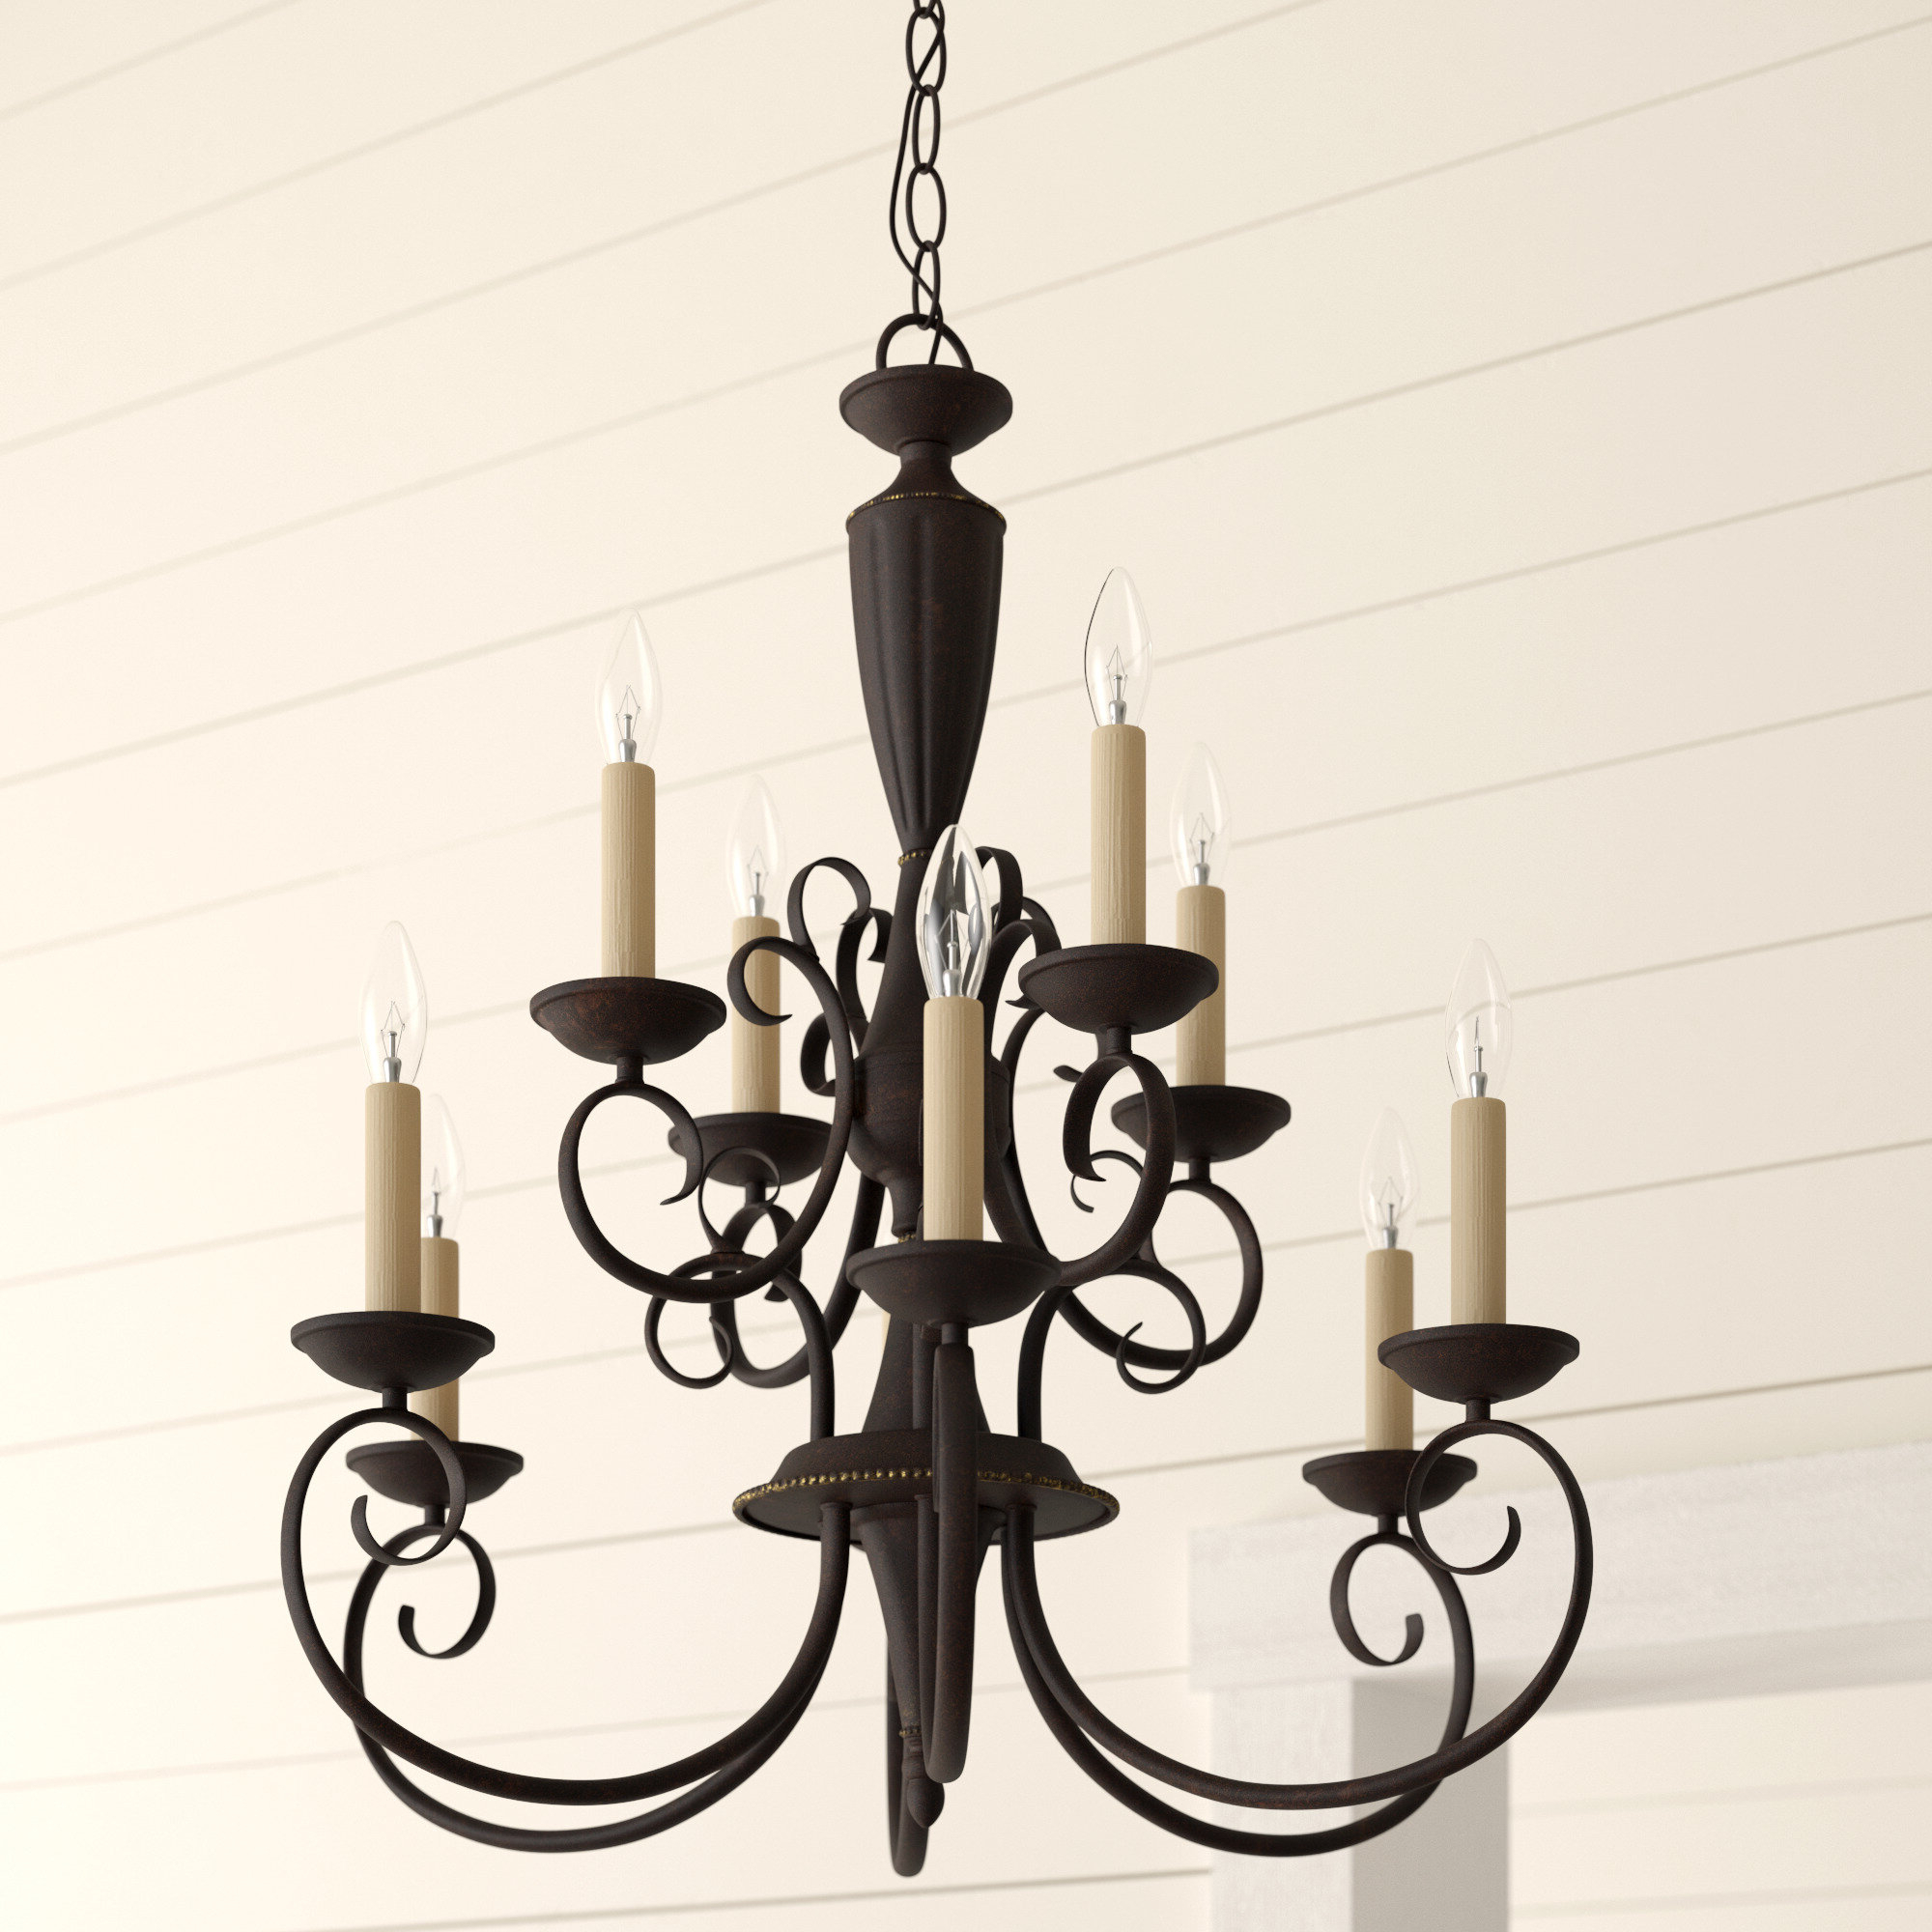 Newent 3-Light Single Bowl Pendants pertaining to Recent Farmhouse & Rustic Charlton Home Chandeliers